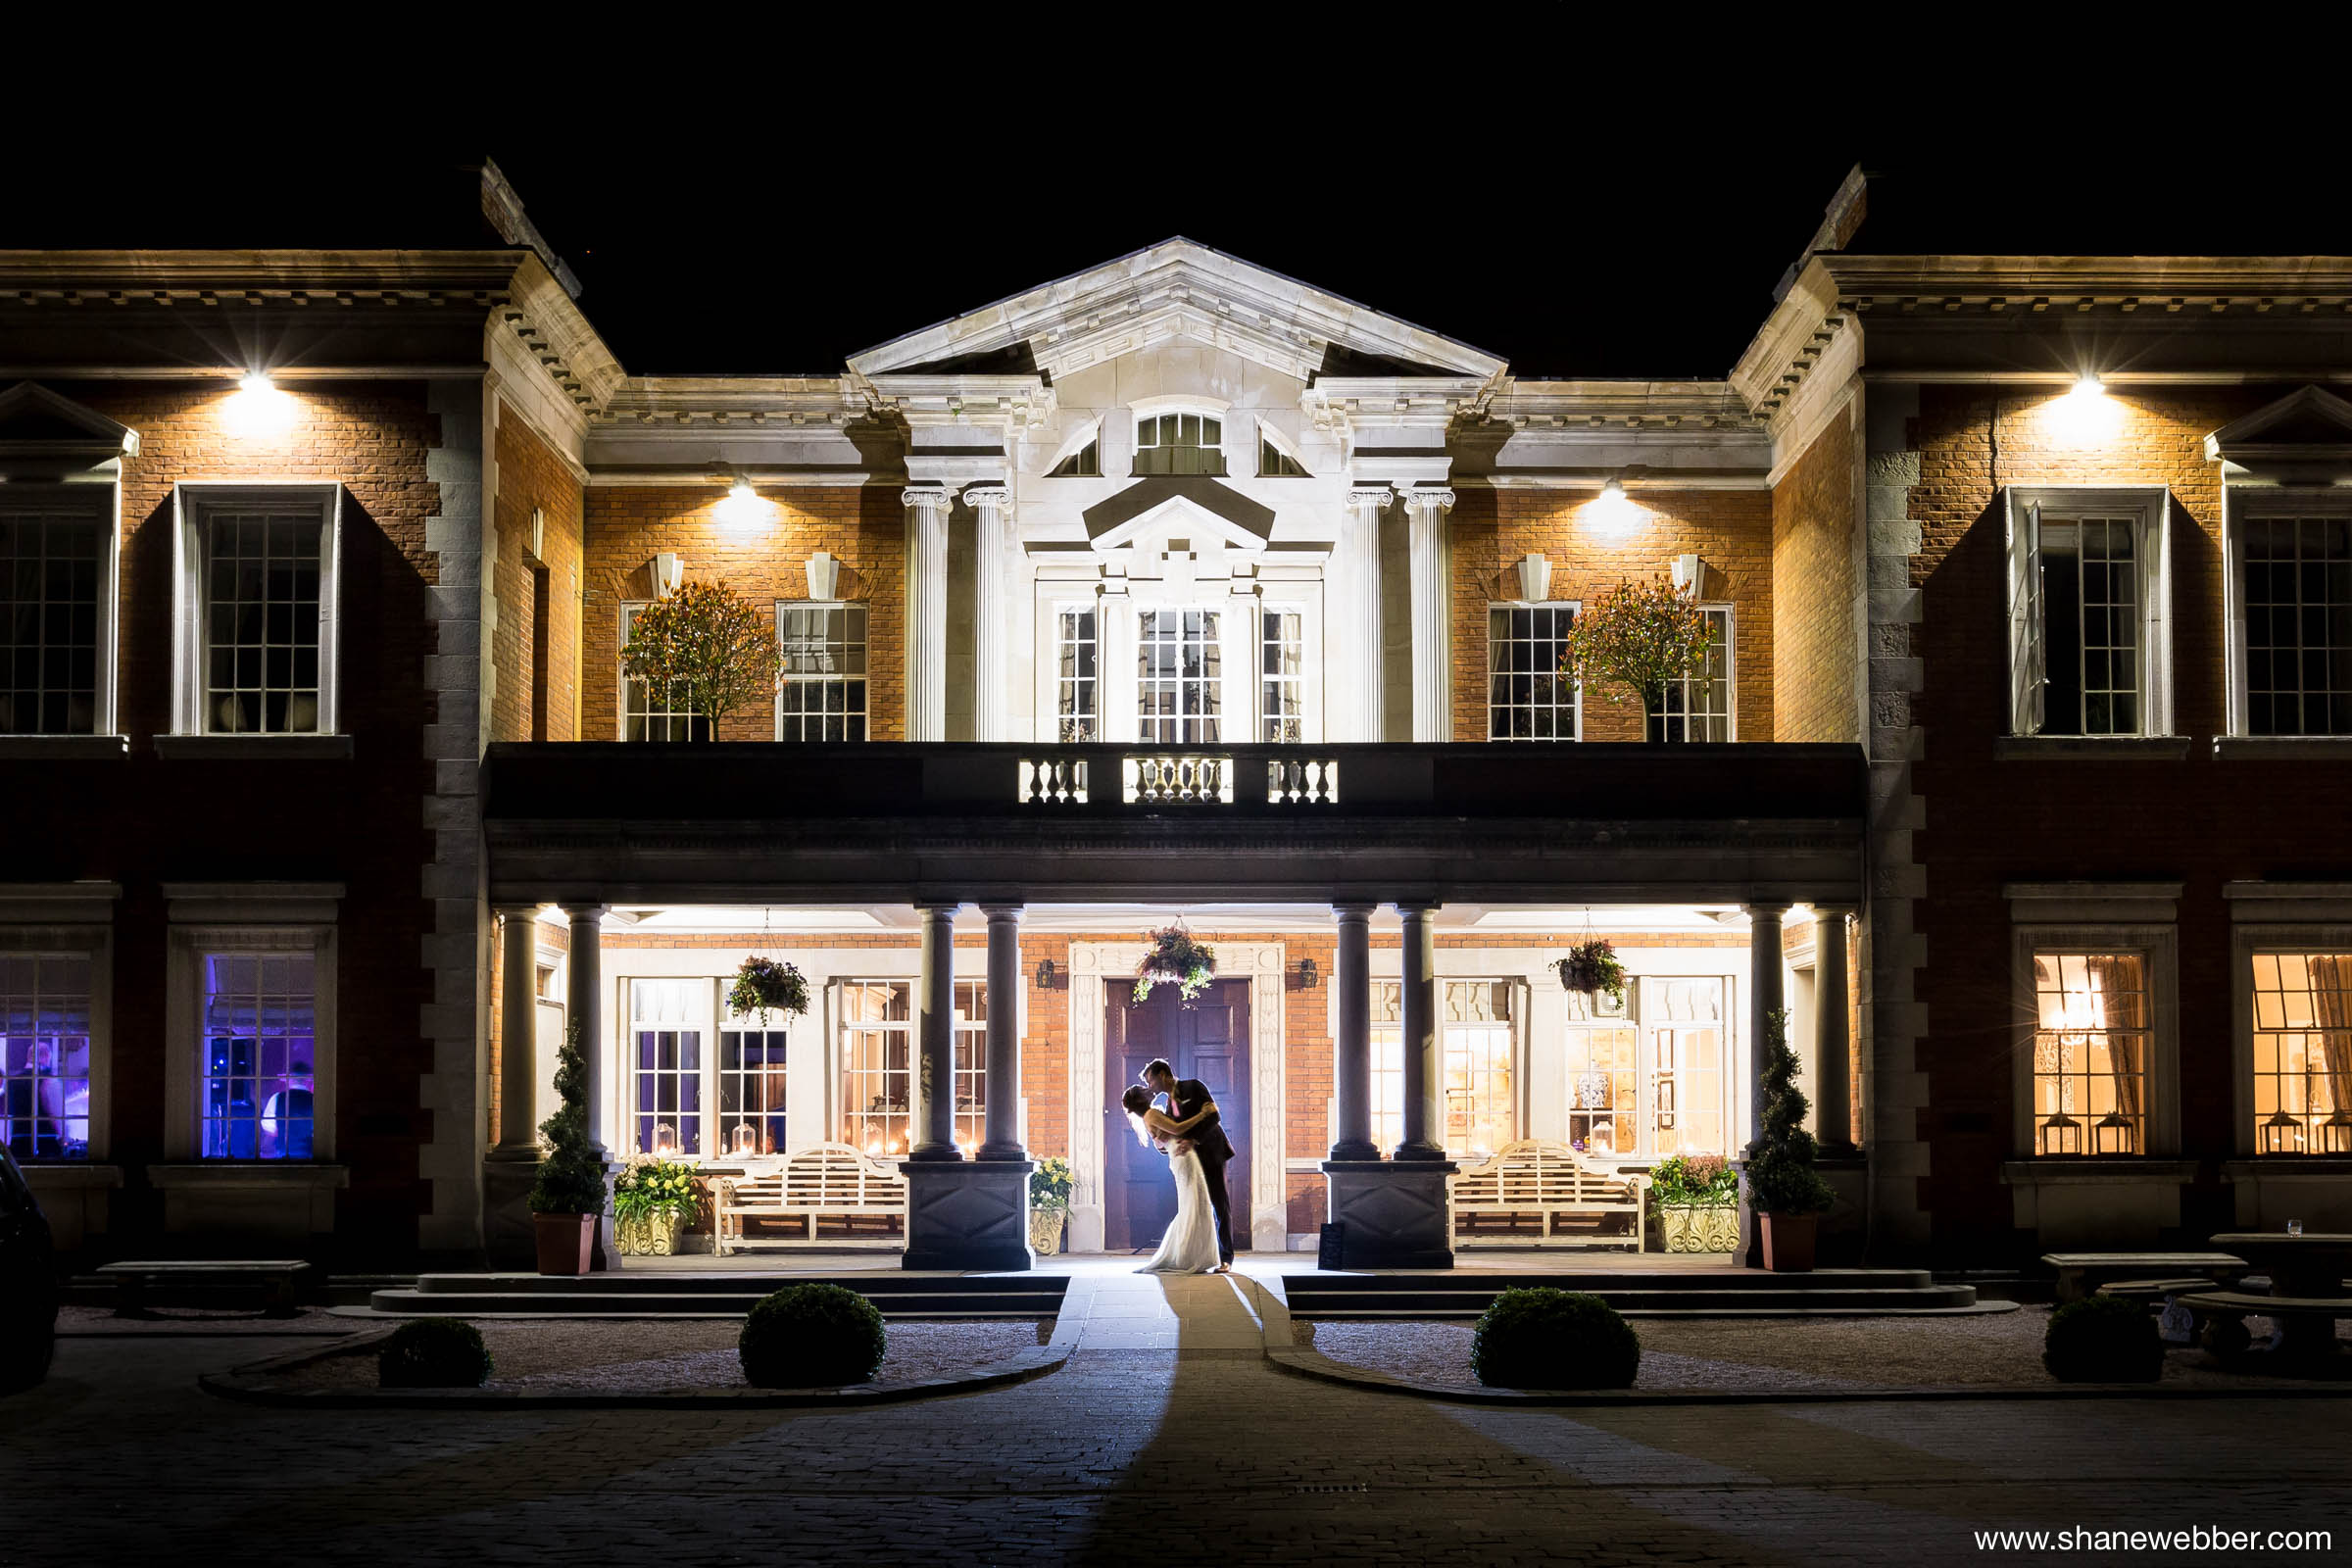 Eaves Hall Wedding Photography at night